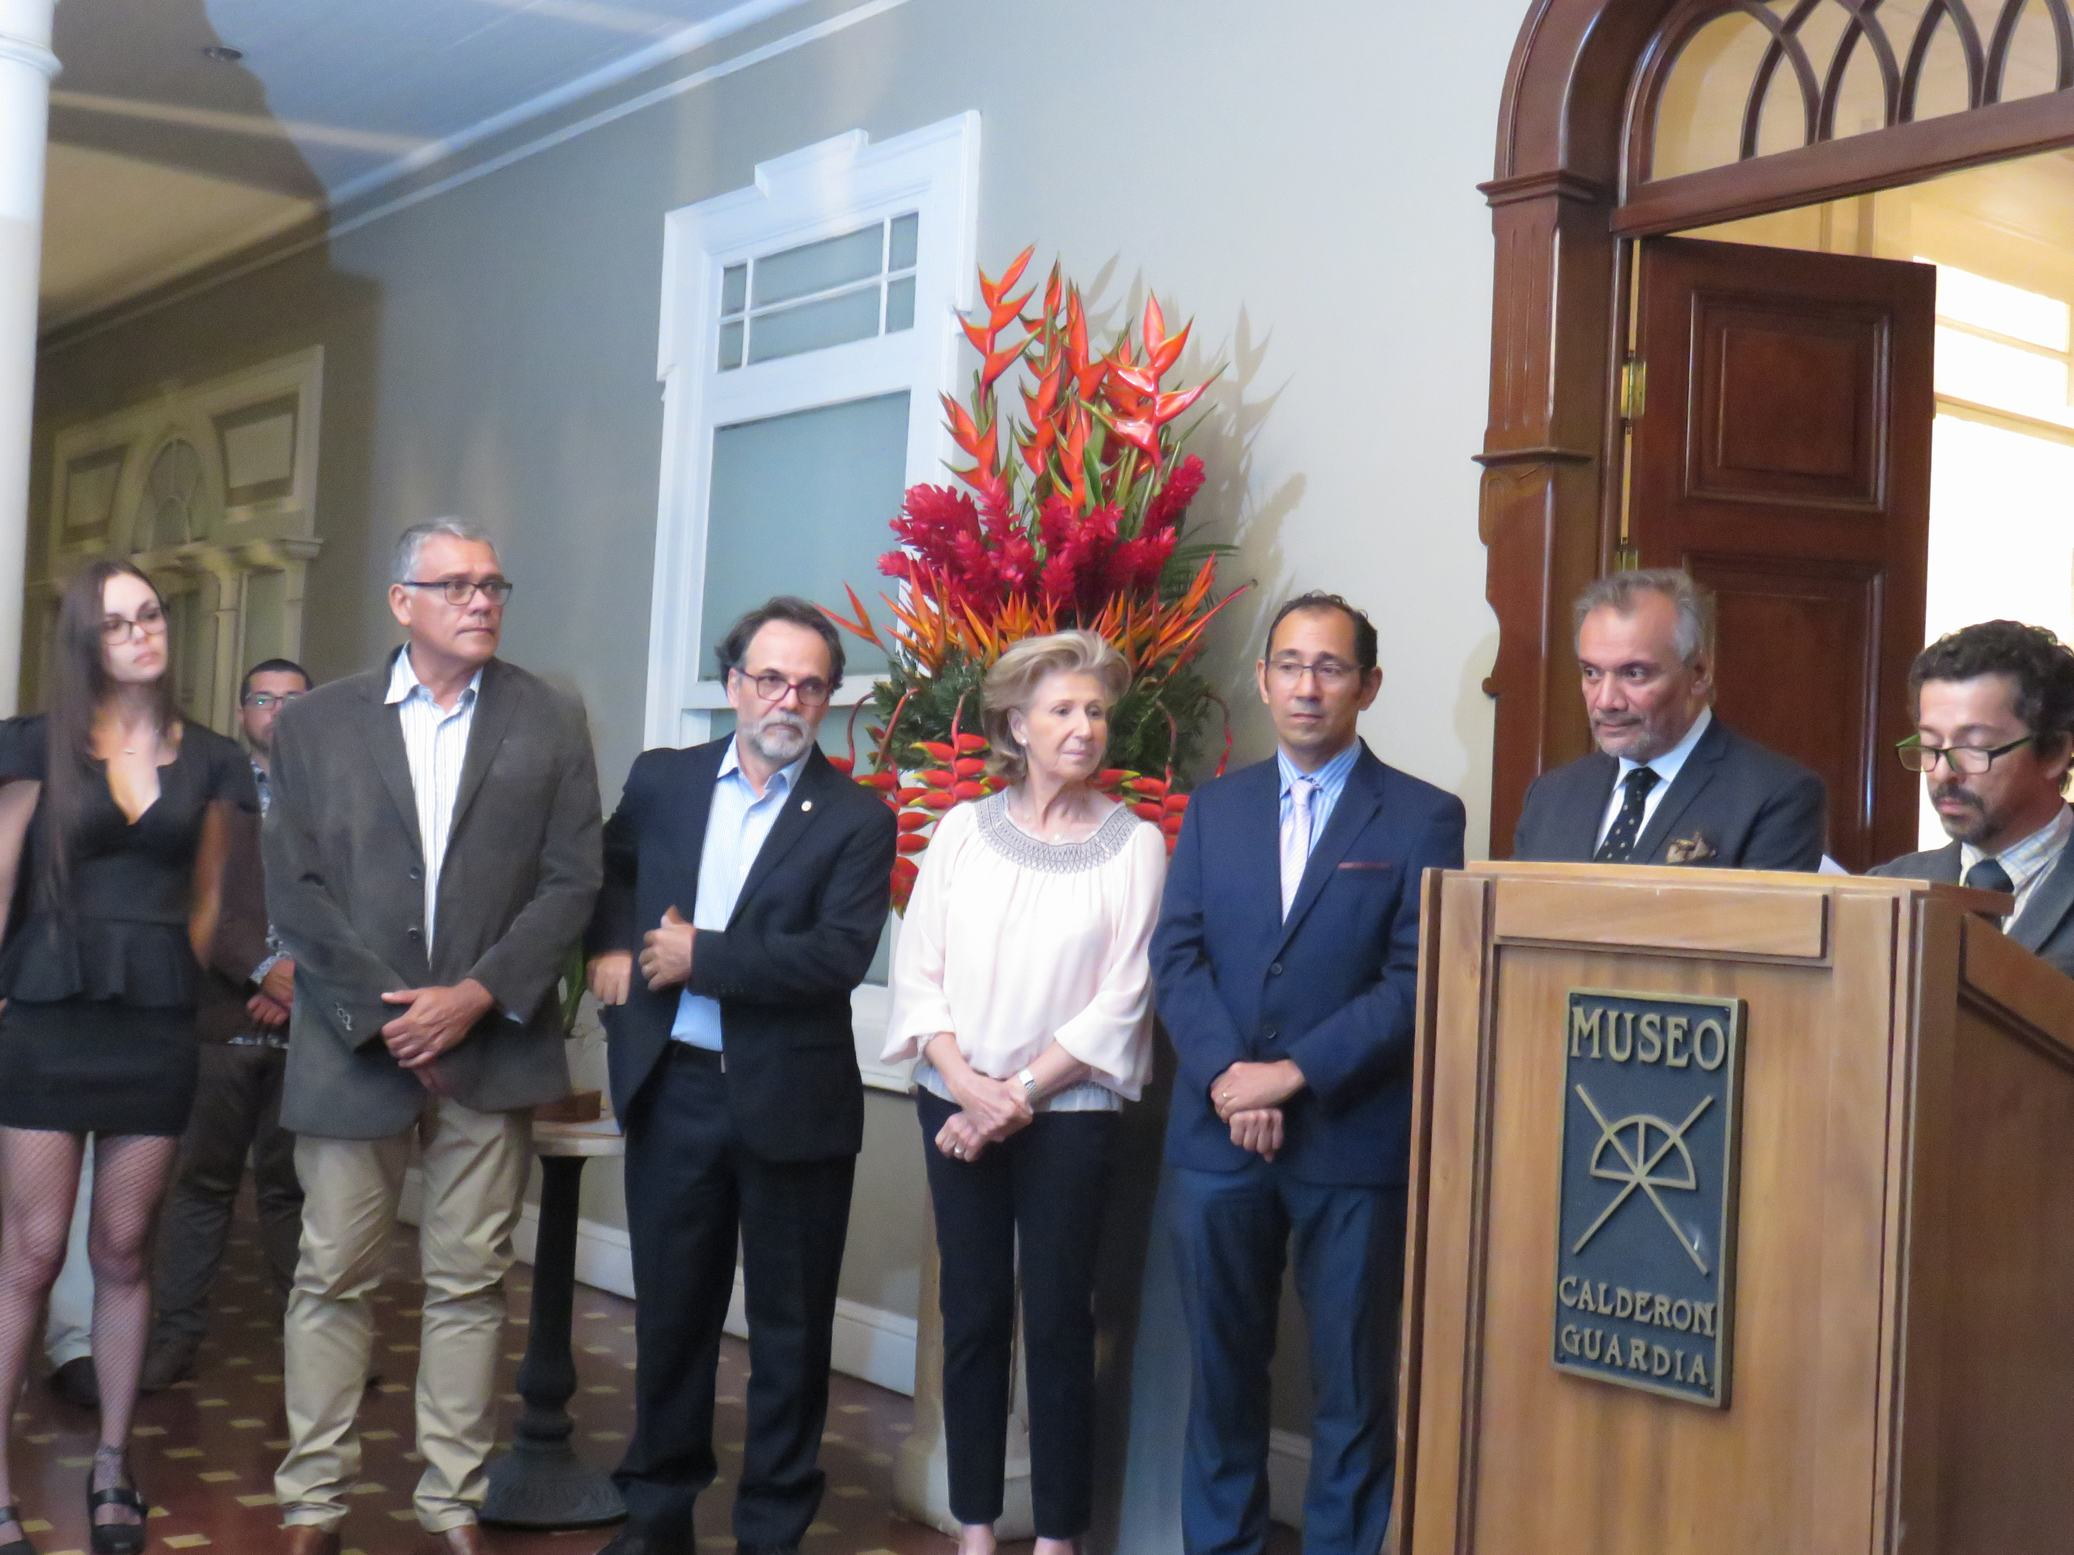 Opening comments by Mario Blanco, Lankester Botanical Garden Director. Looking on from left: Tatiana Muñoz Brenes, Exhibition Manager, Daniel Briceño, Head of University of Costa Rica Biology School, three steering committee members, Prof. Eric Hidalgo, Head of Fine Arts School, Sylvia Strigari, botanical artist, and Jorge Warner, Lancaster Botanical Garden Head of Horticulture, and Luis Nuñez, Museo Calderon Guardia Director.